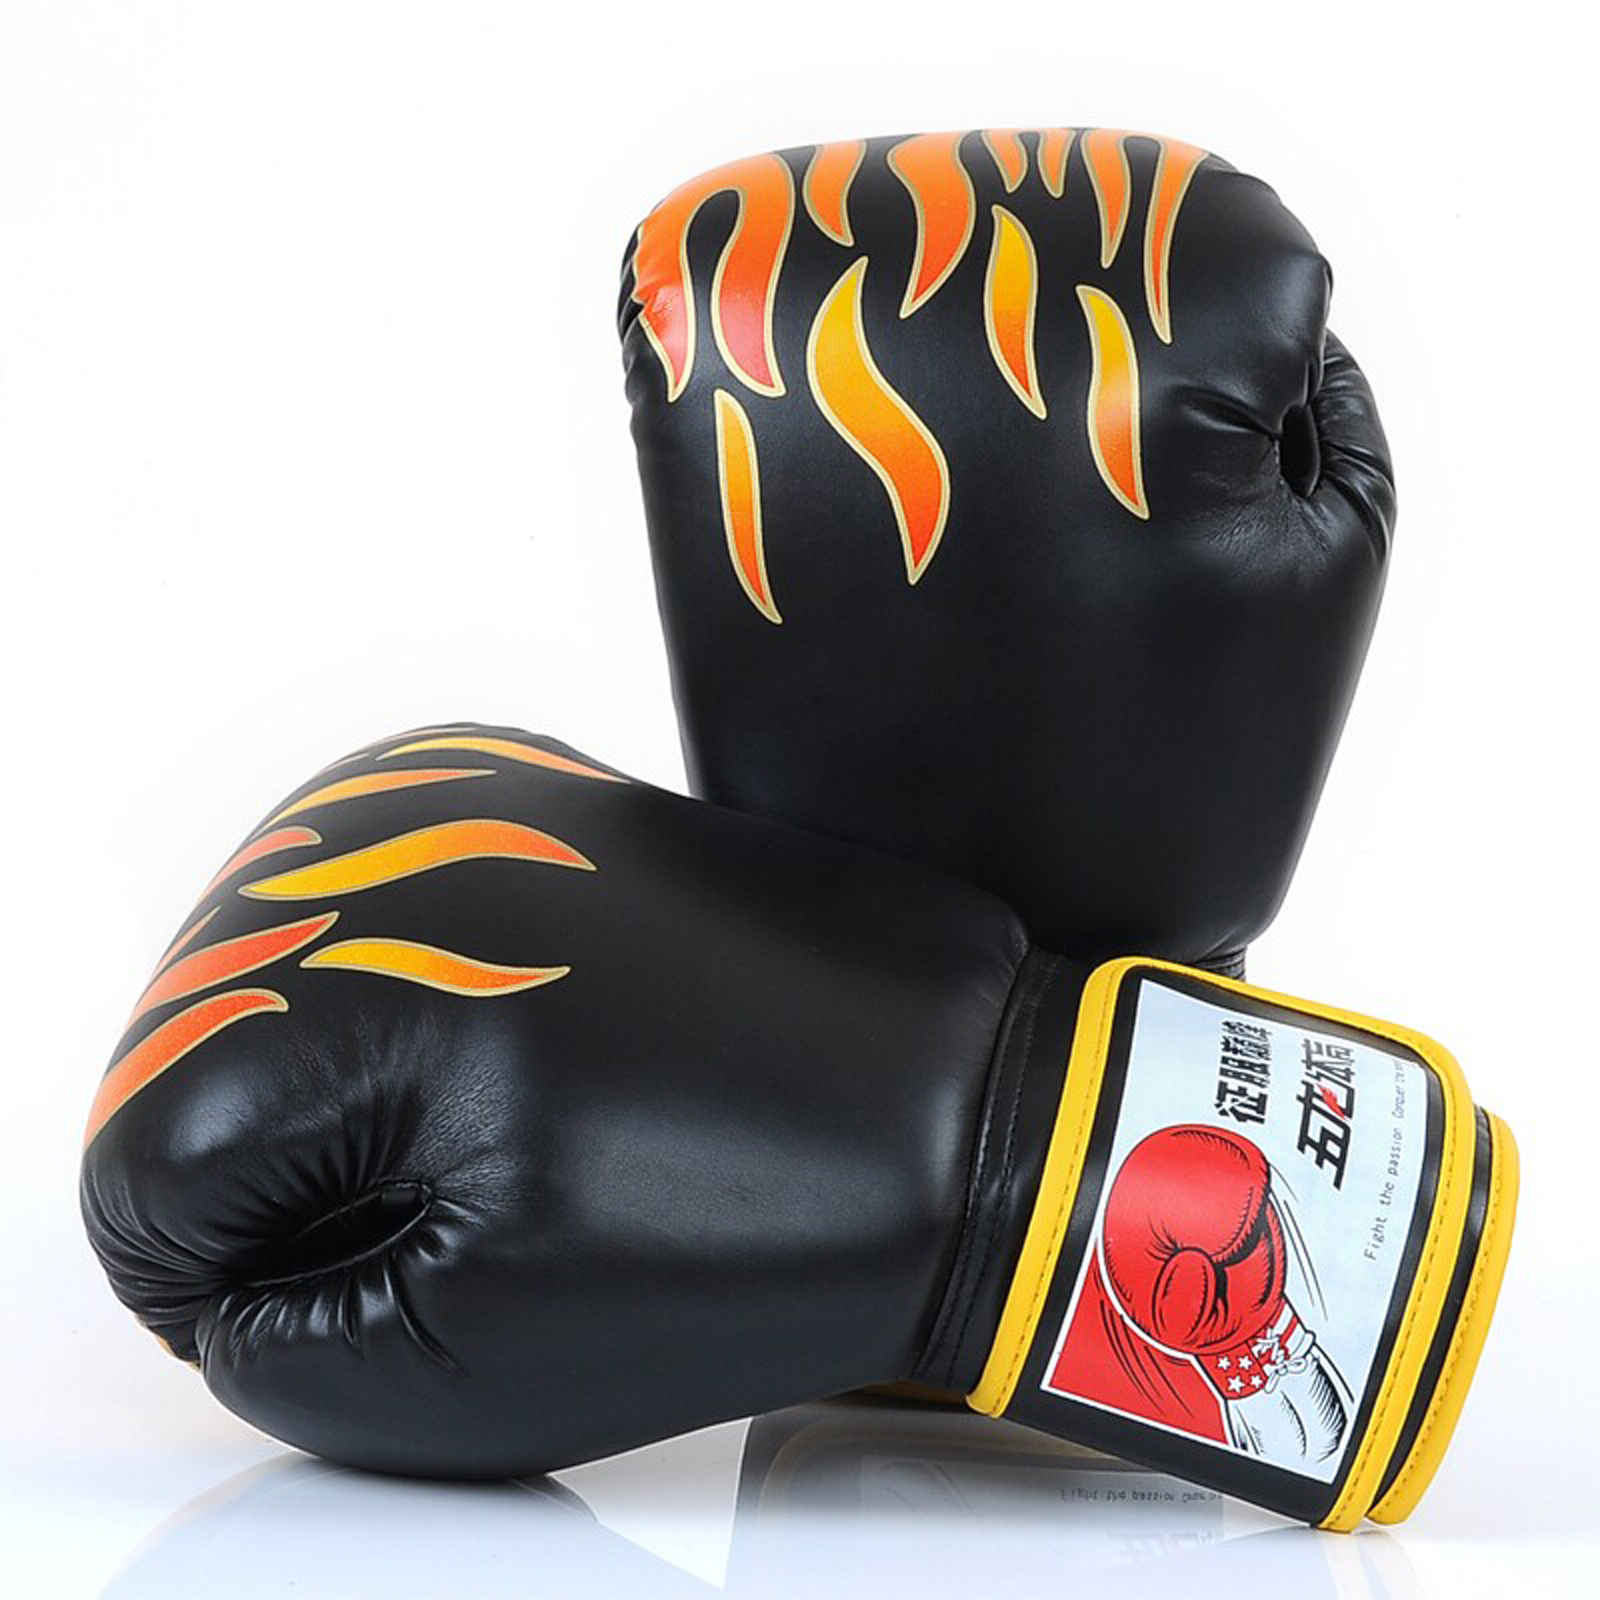 Cheerwing 14oz Boxing Gloves MMA UFC Sparring Fight Punch Mitts Leather Training Gloves by Wolon